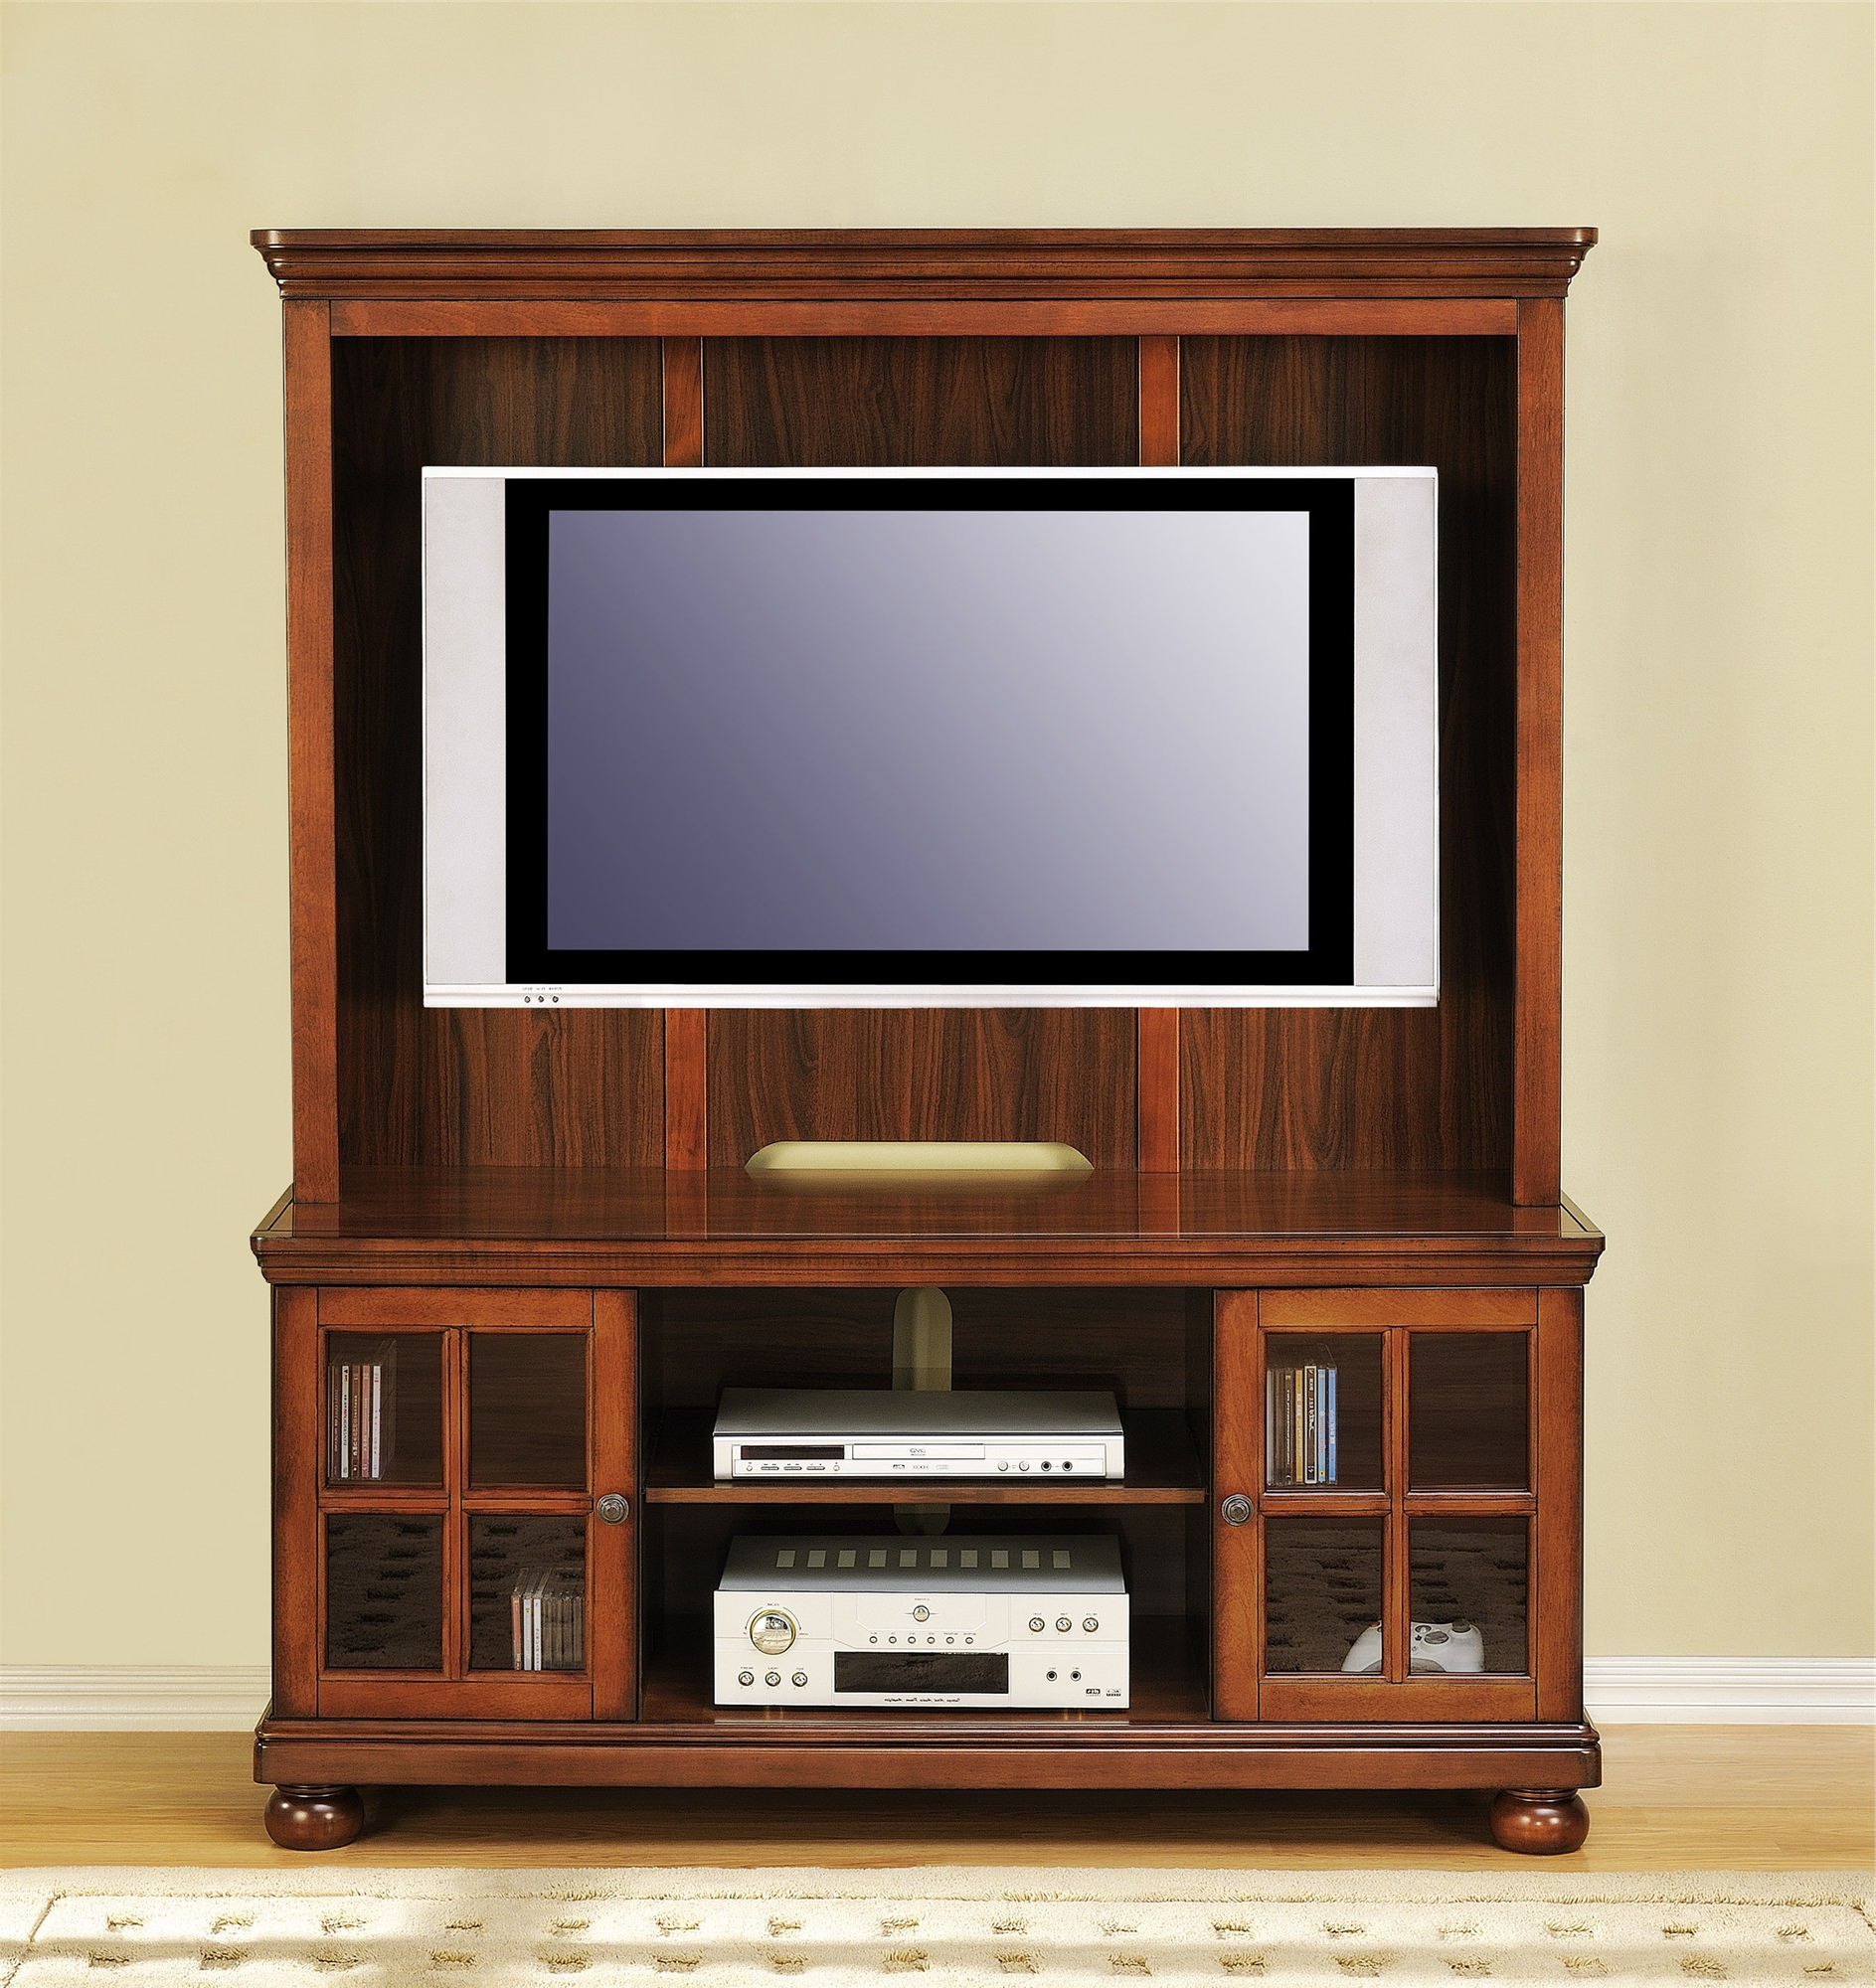 Recent Wooden Tv Stands For Flat Screens Intended For Tv Stand Design Ideas Costco Stands For Flat Screens Home Furniture (View 2 of 20)